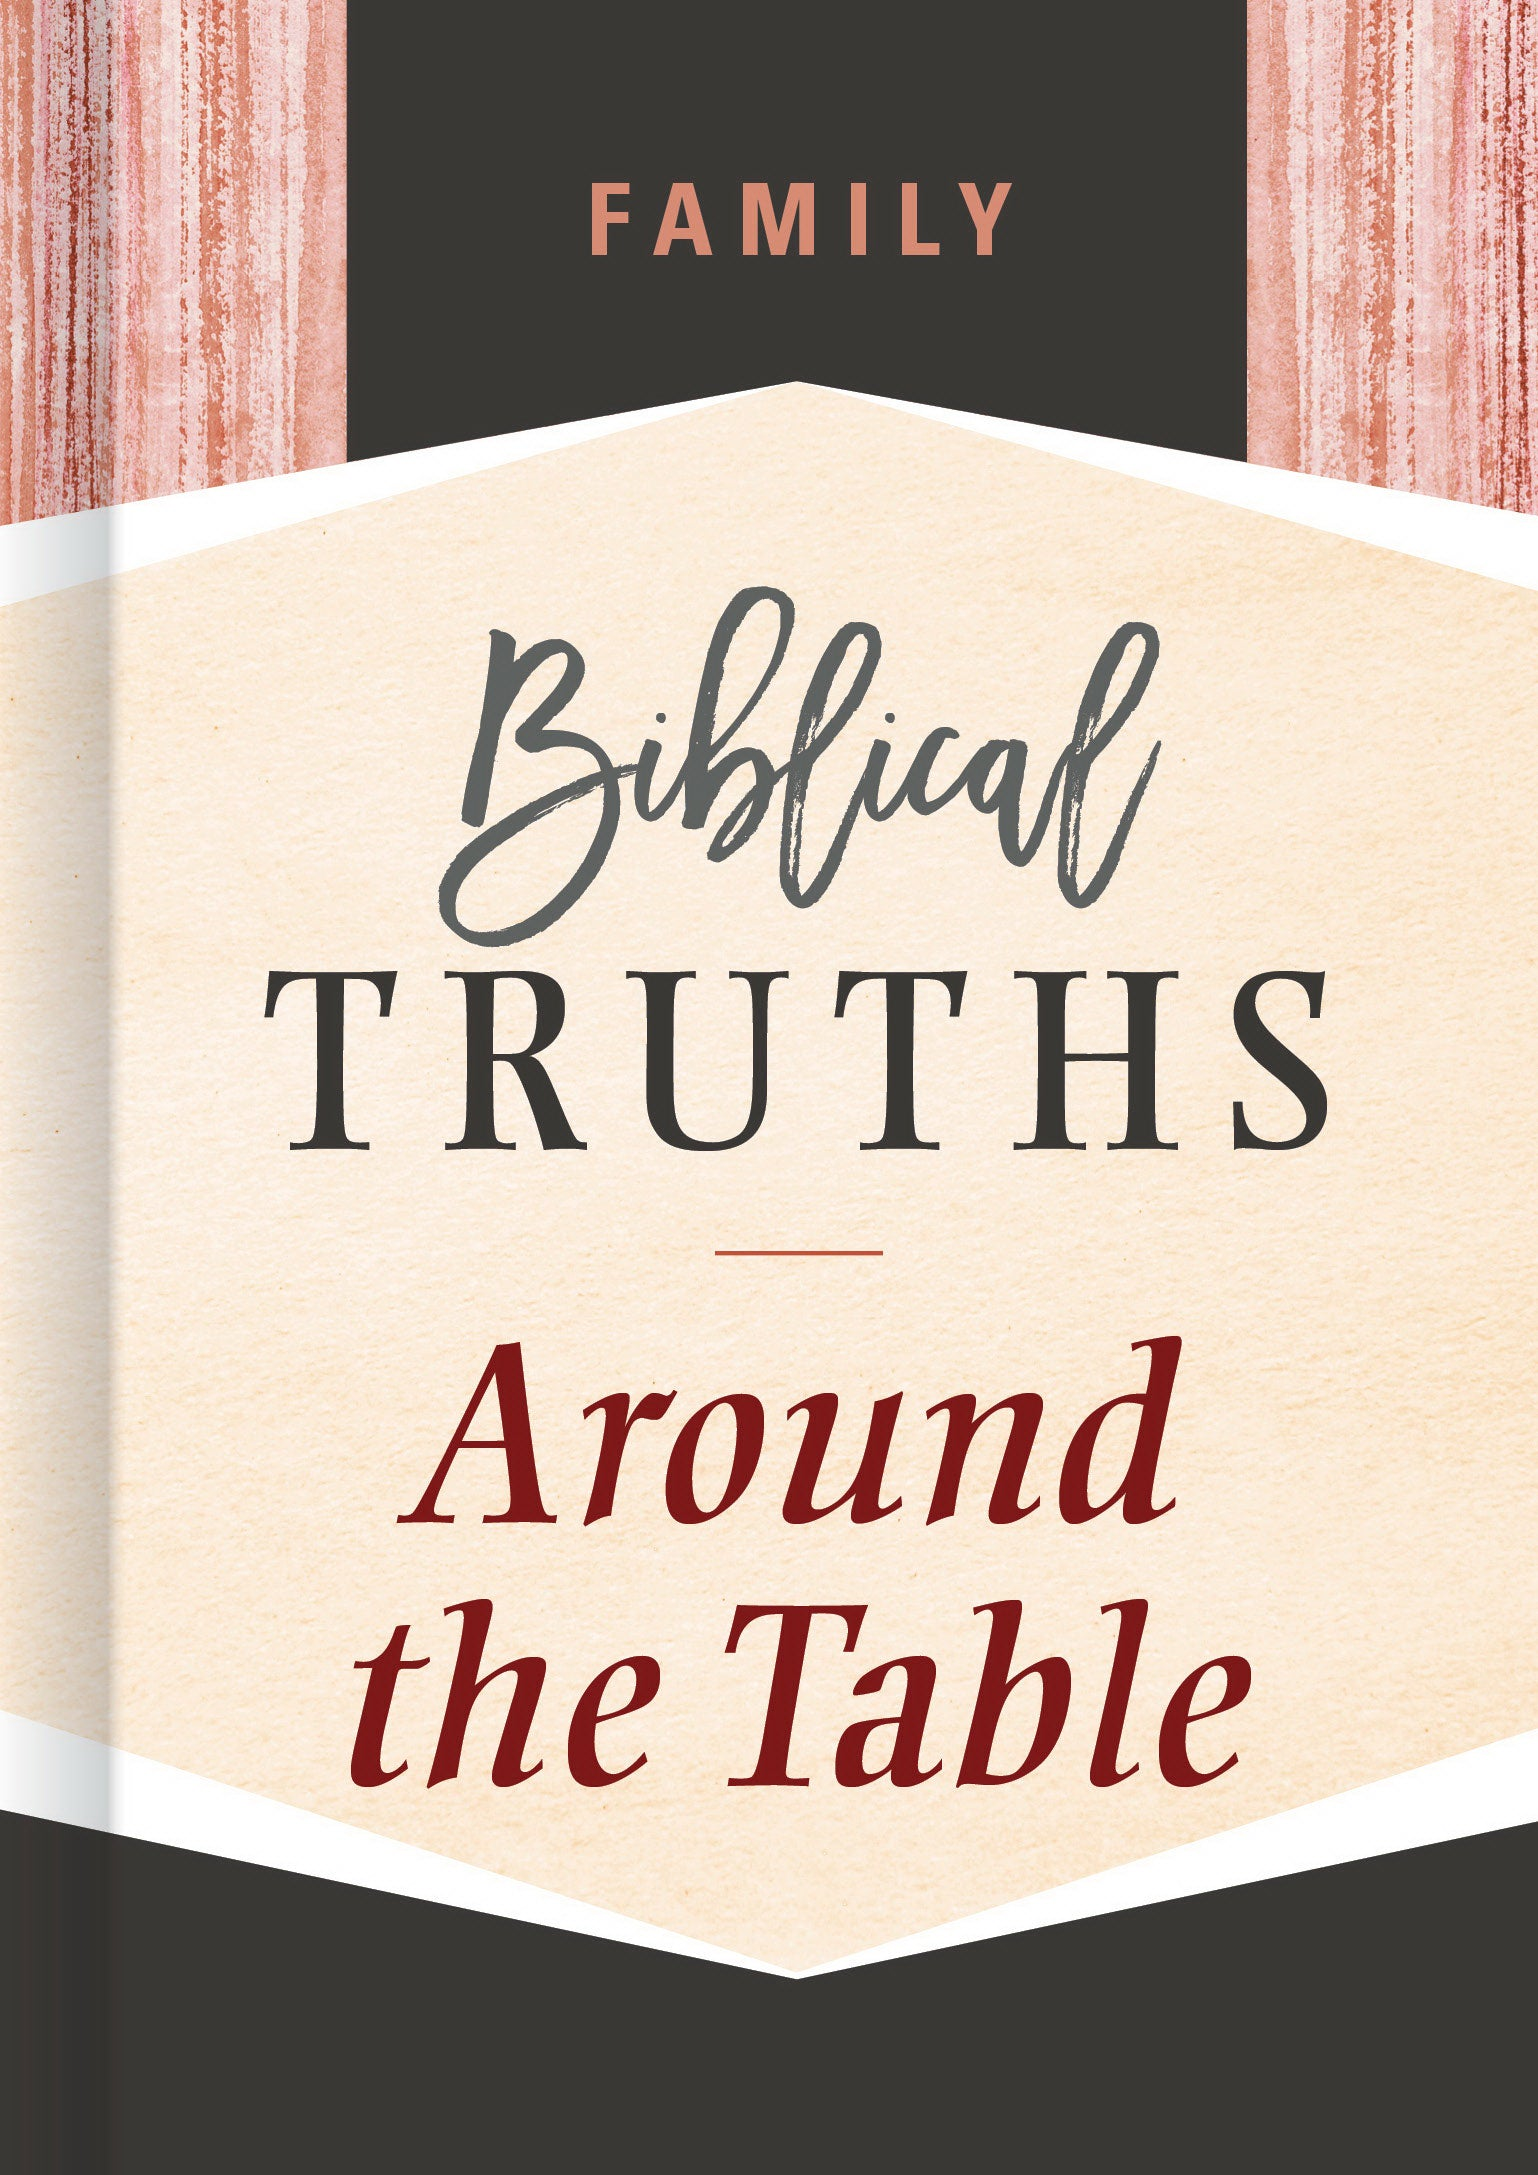 Family: Biblical Truths Around The Table